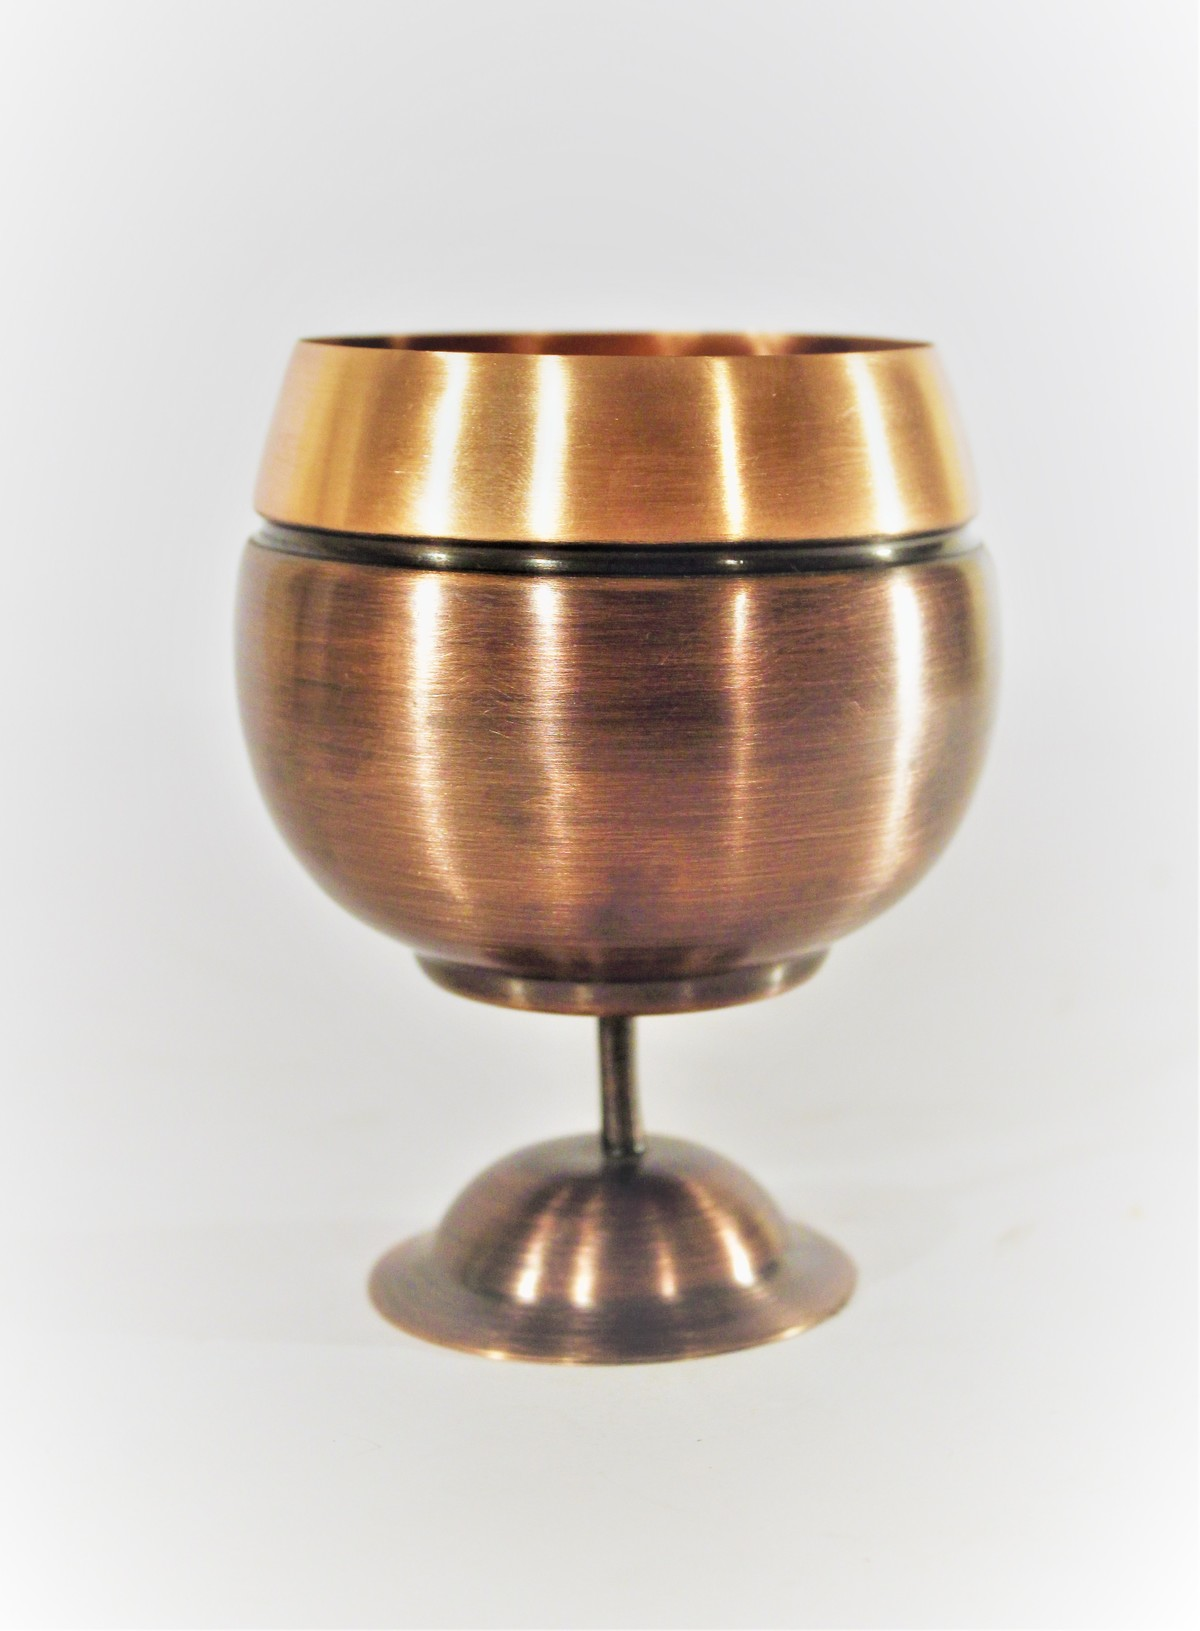 COURTYARD JALTARANG GOBLET Kitchen Ware By COURTYARD